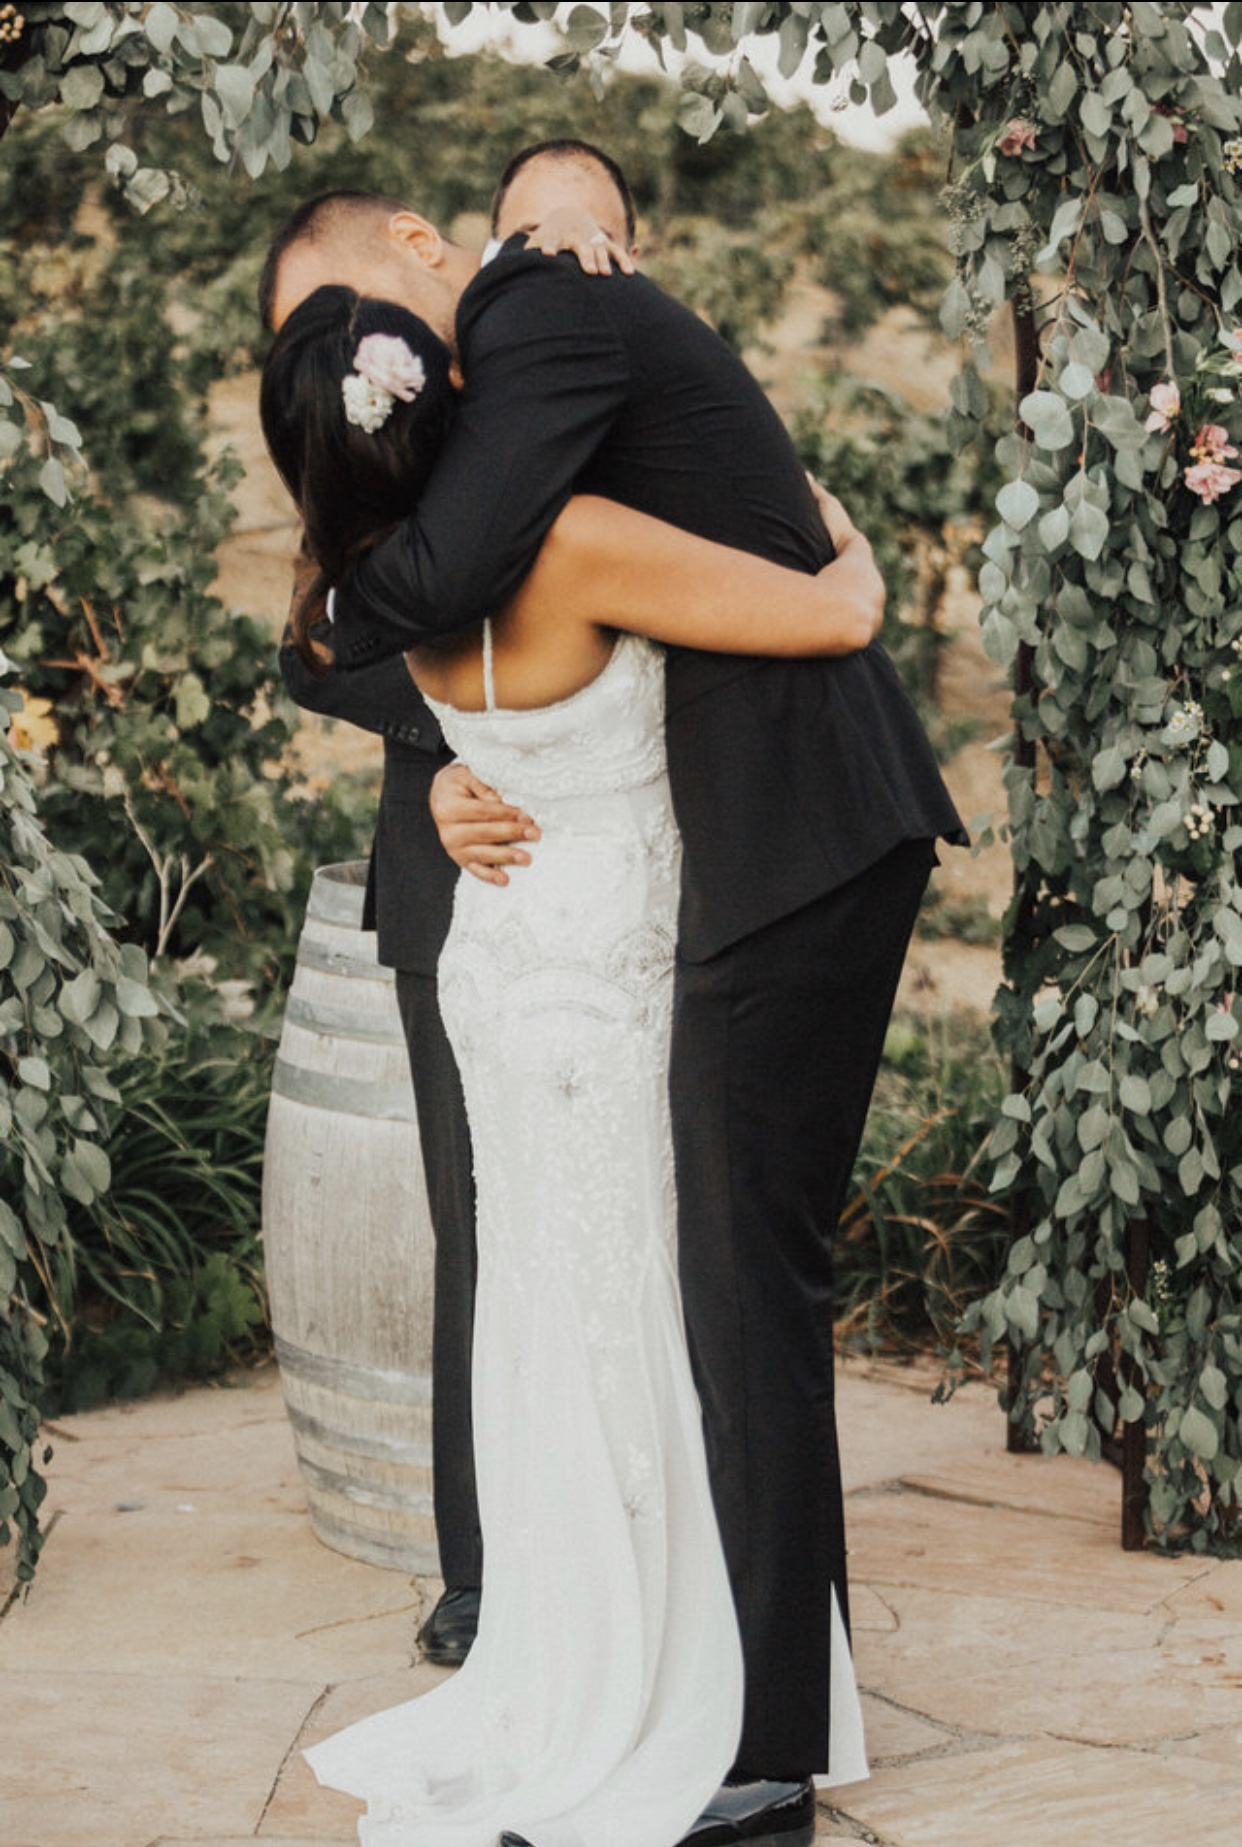 """Oh, wait, but Ross just couldn't get enough! So he went in for the full embrace, too! I overheard our Officiant say """"THERE YOU GO!"""""""